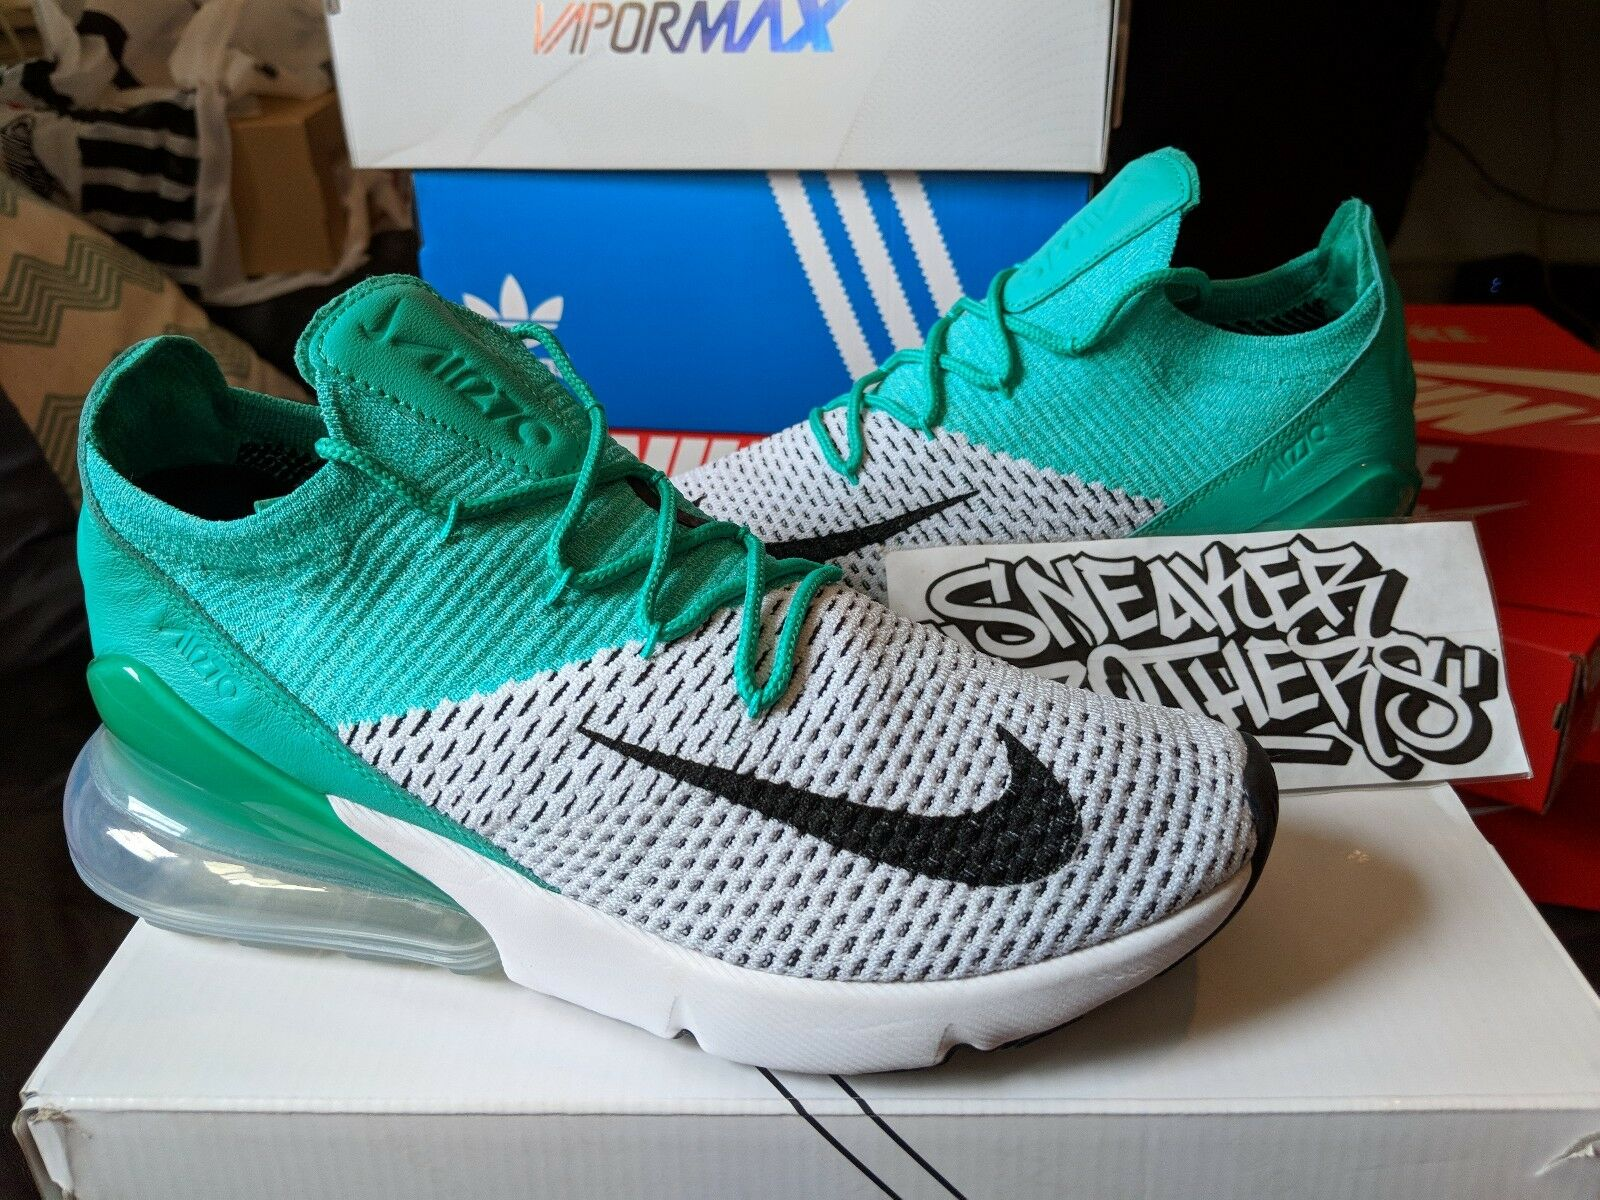 Nike Women's W Air Max 270 Flyknit Clear Emerald Black Pure Platinum AH6803-300 Brand discount